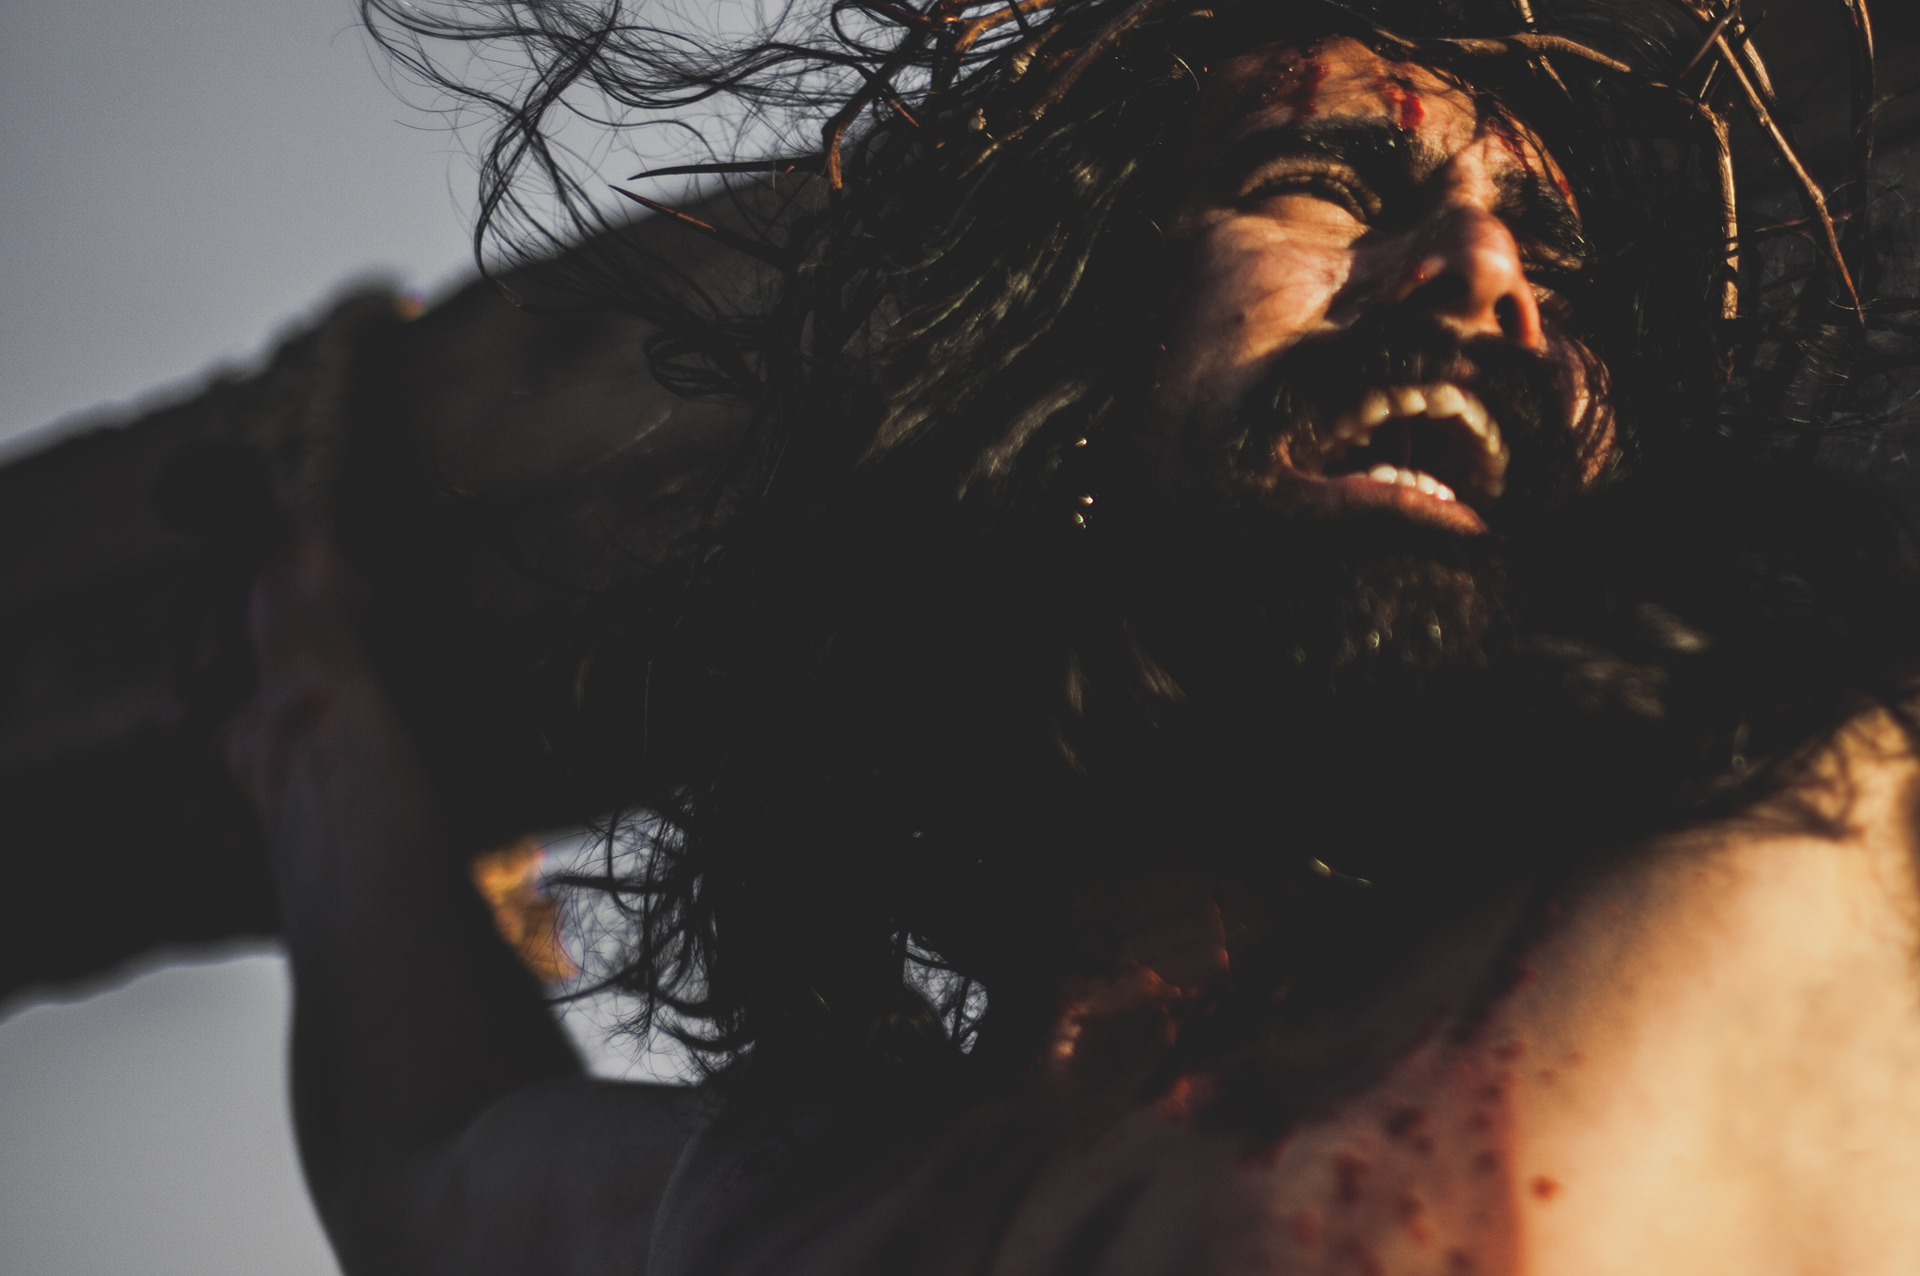 https://www.obfbc.org/wp-content/uploads/2019/01/christ-died.jpg